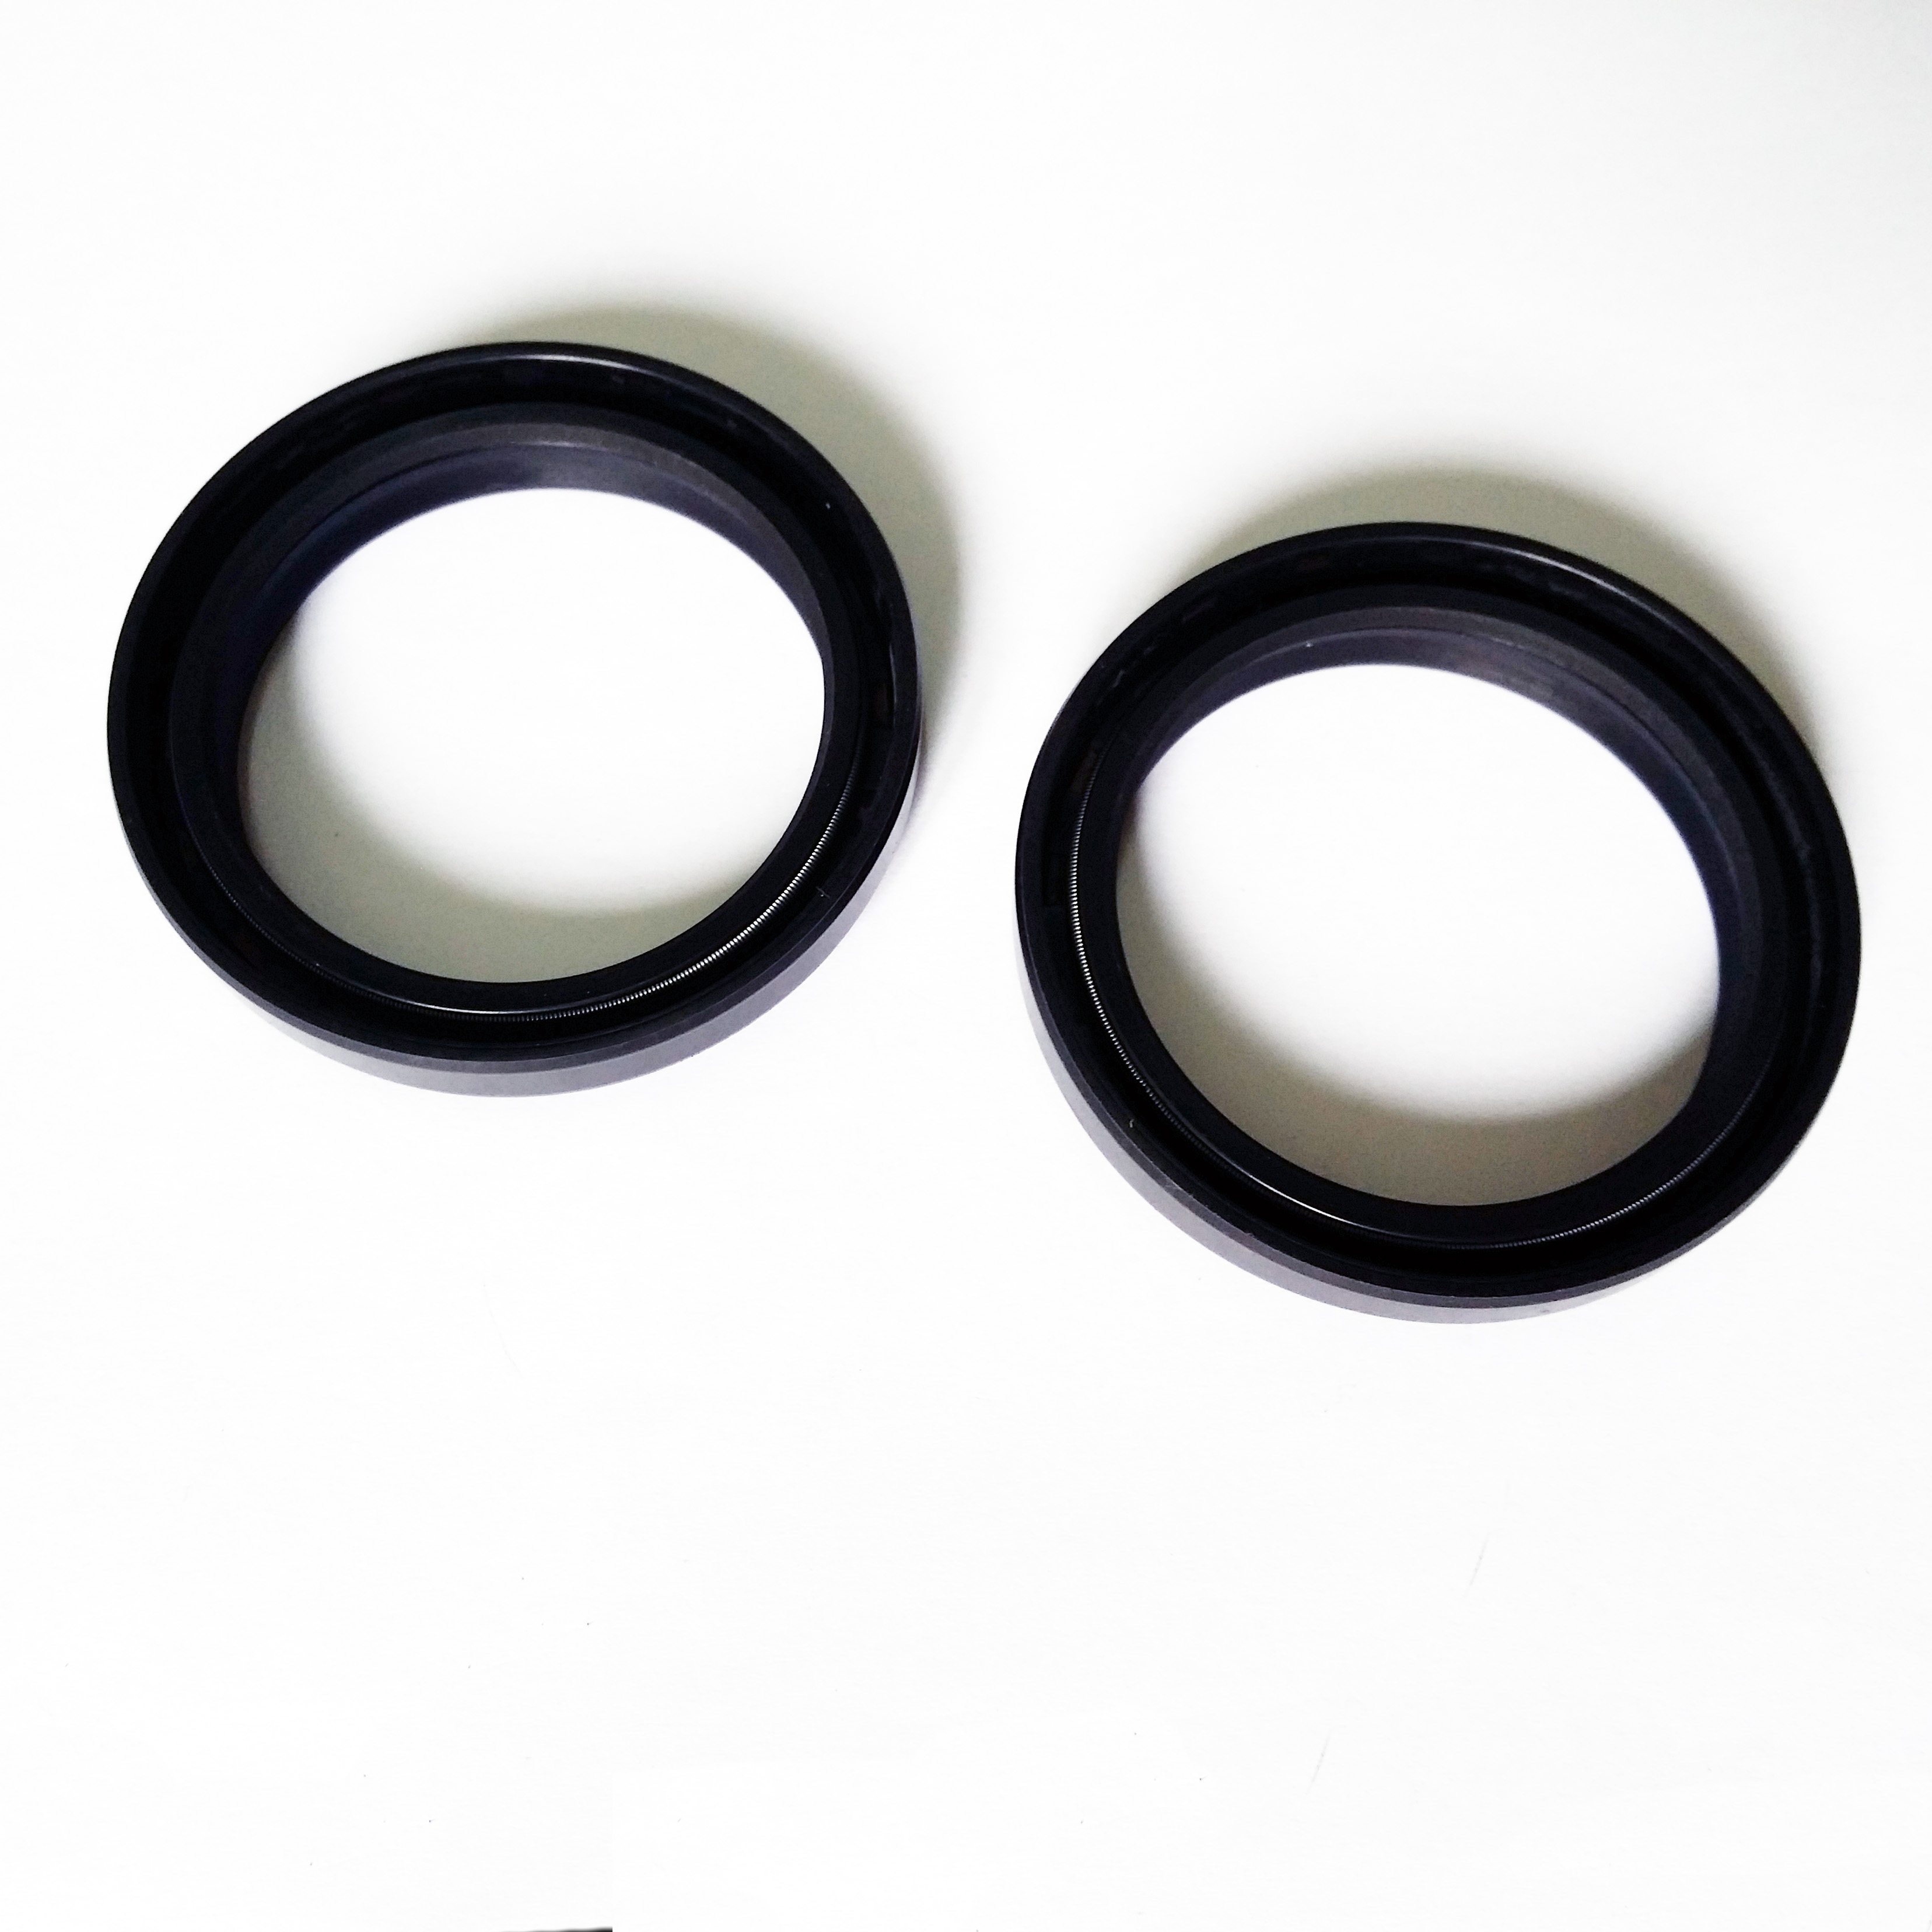 K-Tech Ducati 748   1995-2003 NOK Front Fork Oil Seals 43x54x11mm